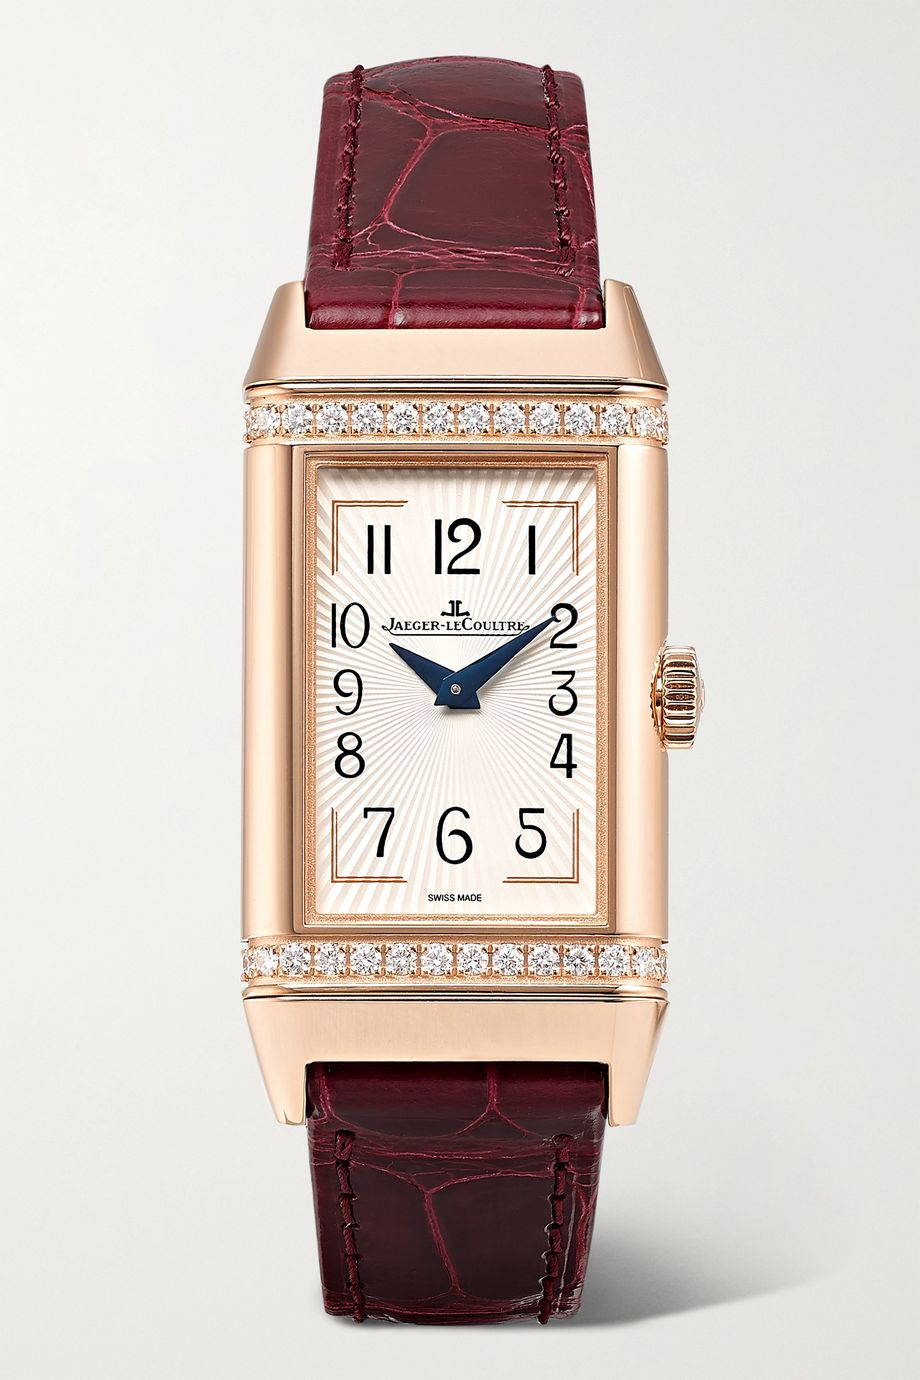 Jaeger-LeCoultre Reverso One Duetto 20 毫米玫瑰金钻石腕表(短吻鳄鱼皮表带)